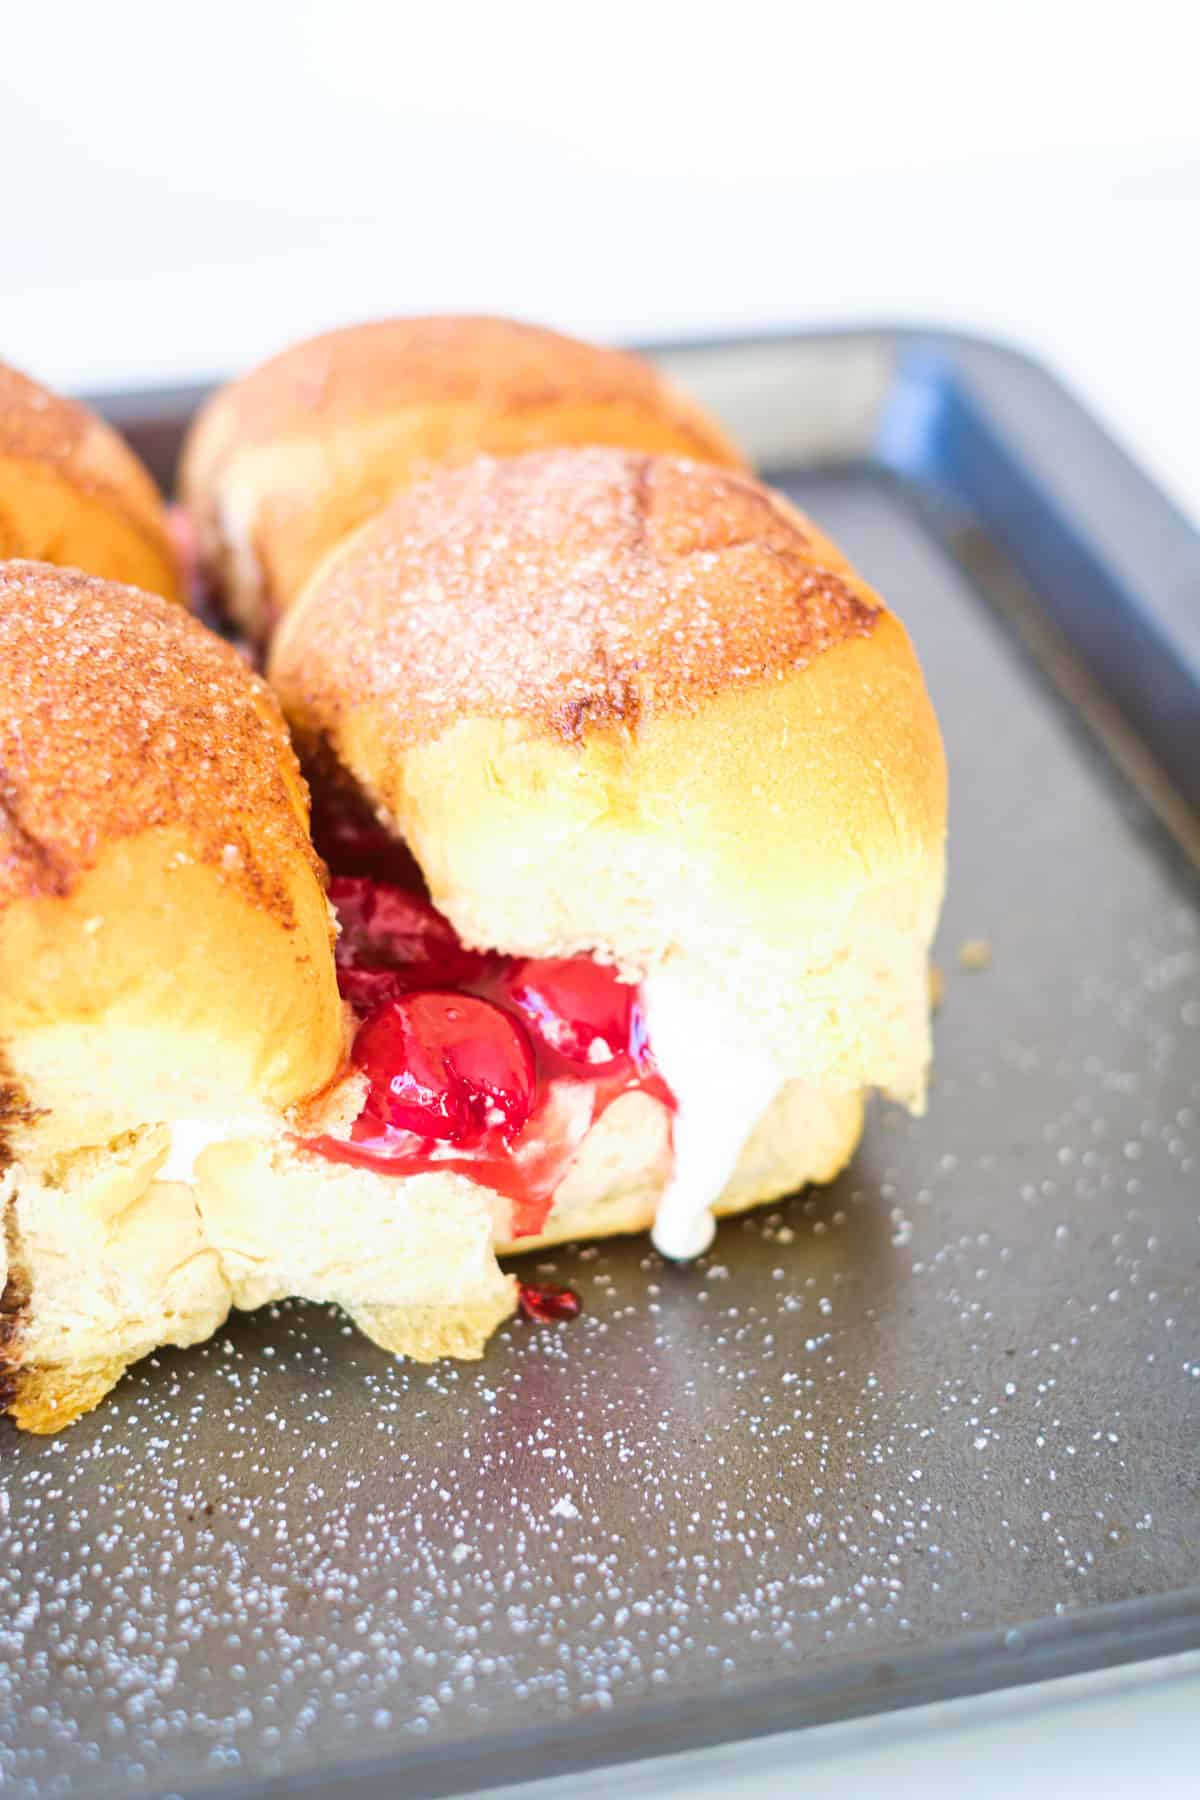 the finished cherry pie sliders on a baking pan